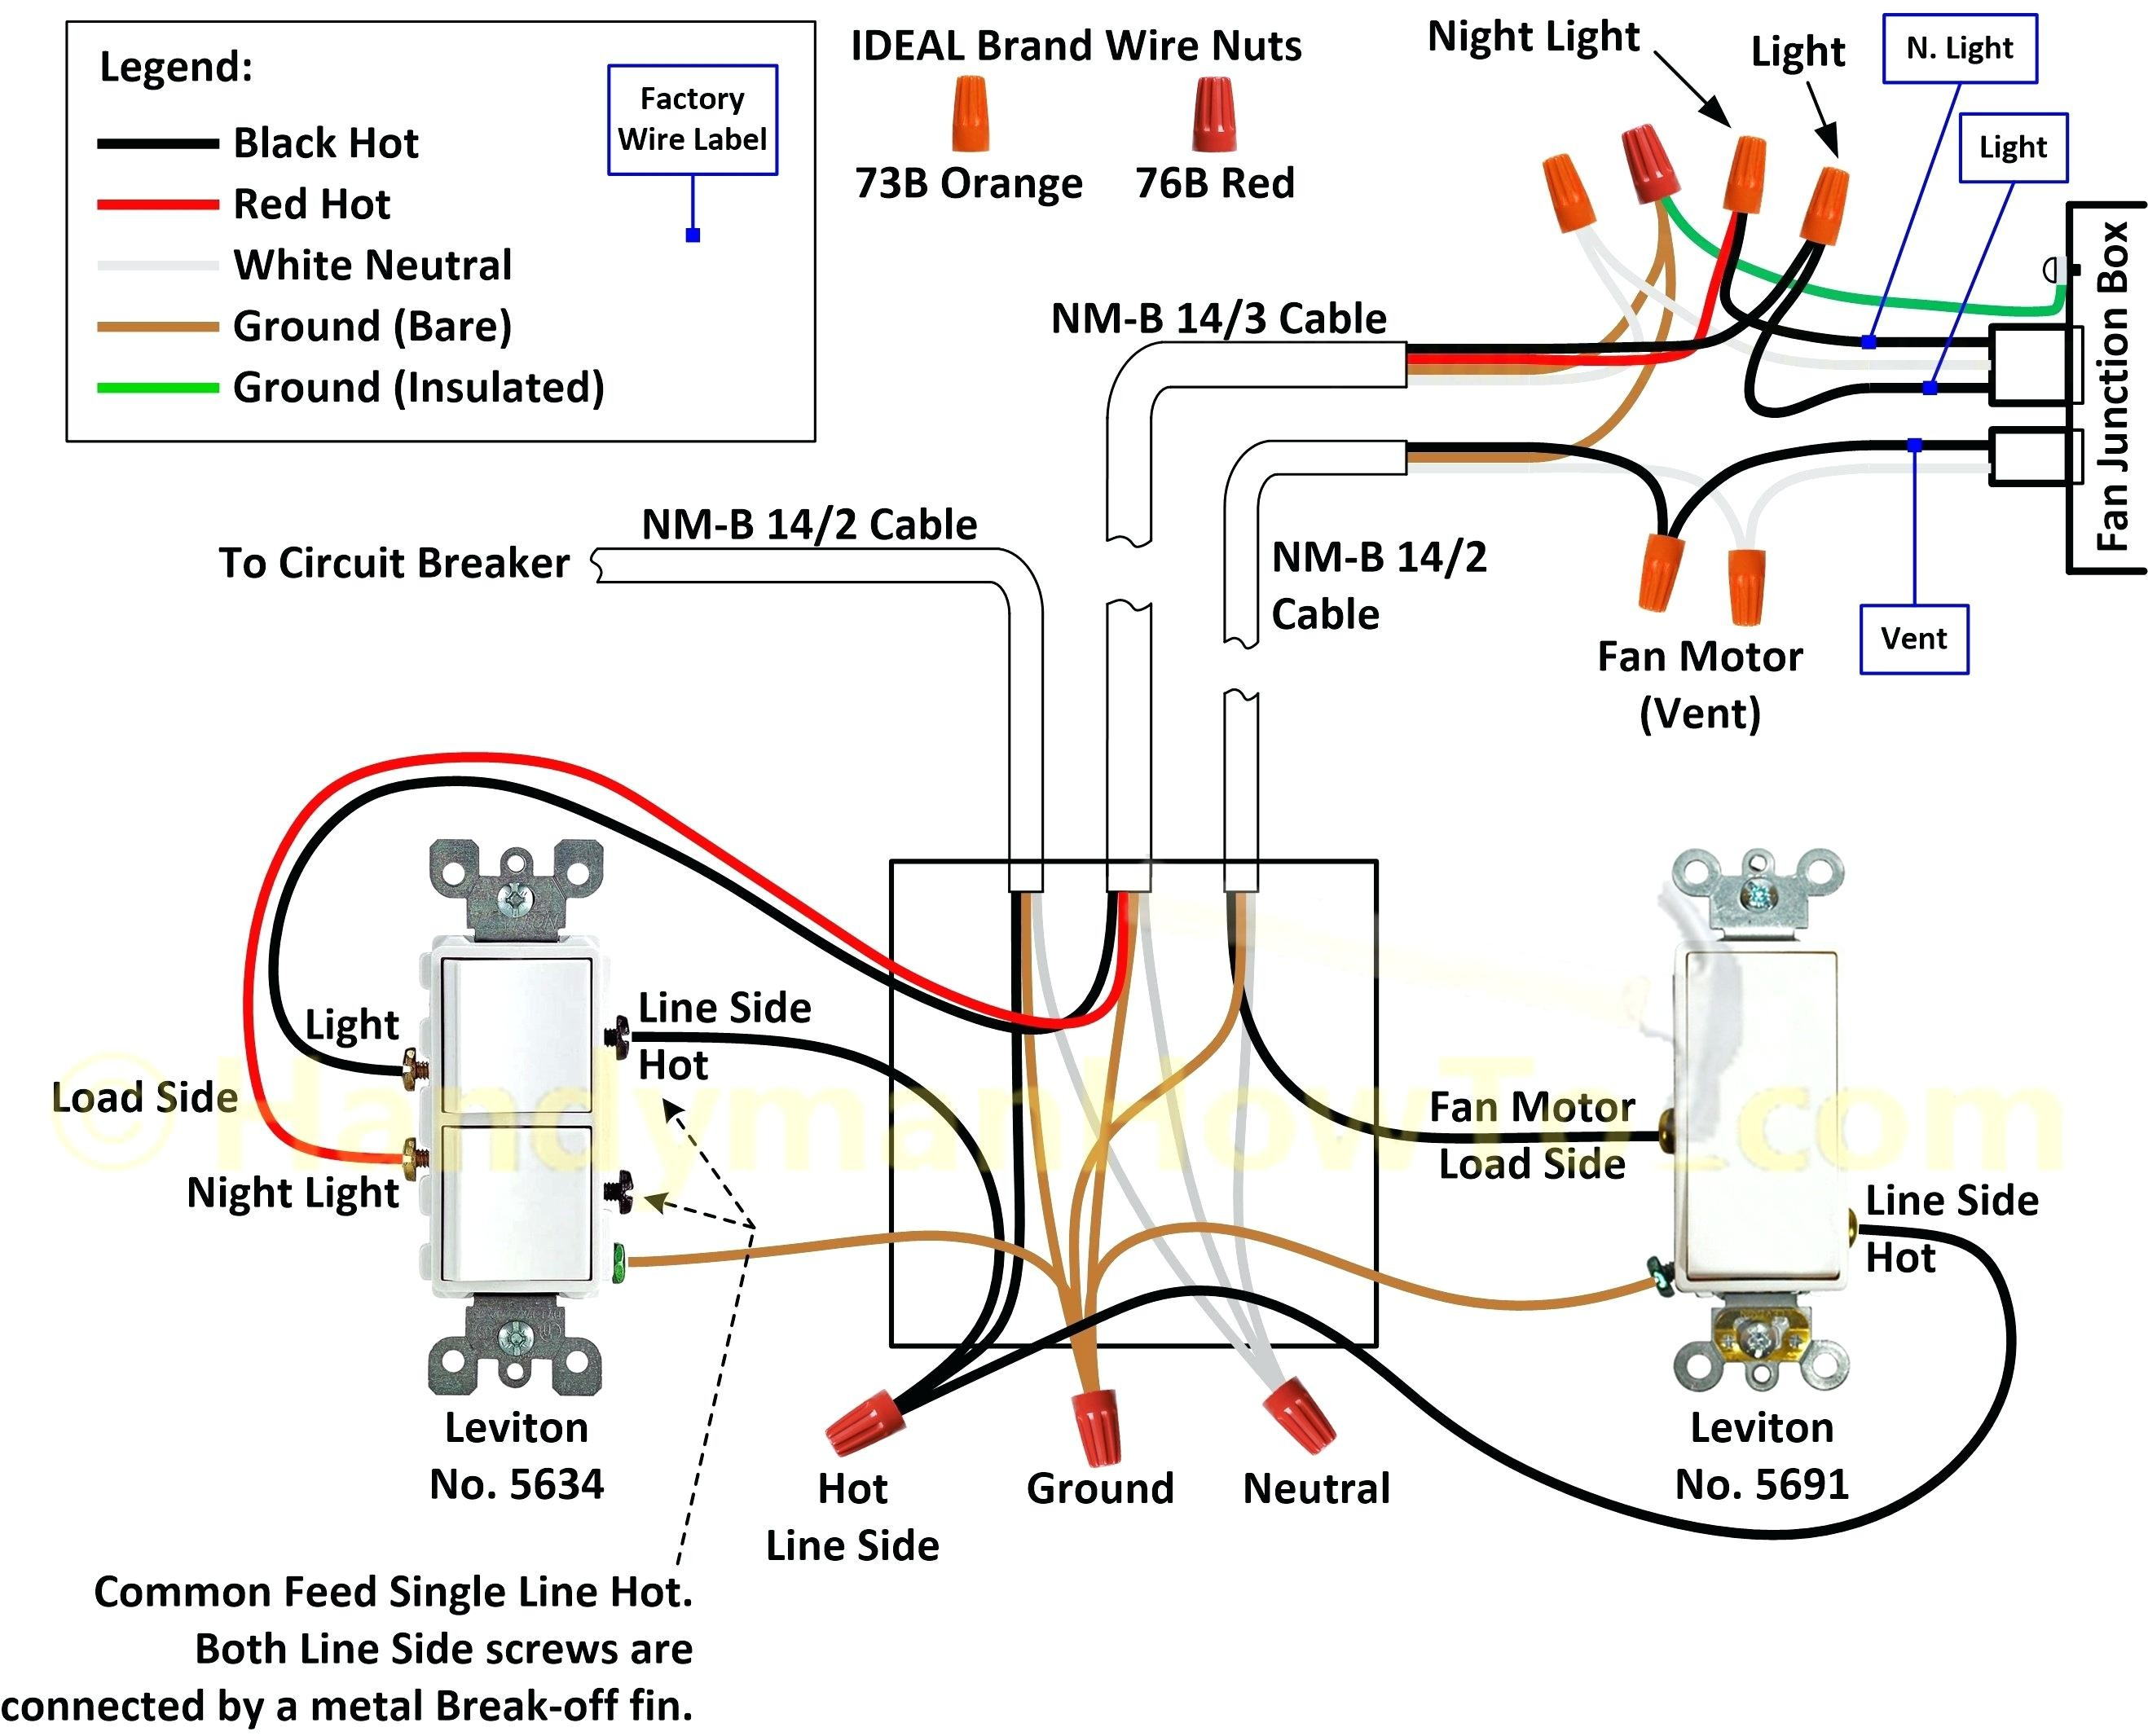 Dimmable Ballast Wiring Diagram Lutron Dimming Ballast Wiring Diagram 3 Way Switch Guitar Dimmer Of Dimmable Ballast Wiring Diagram